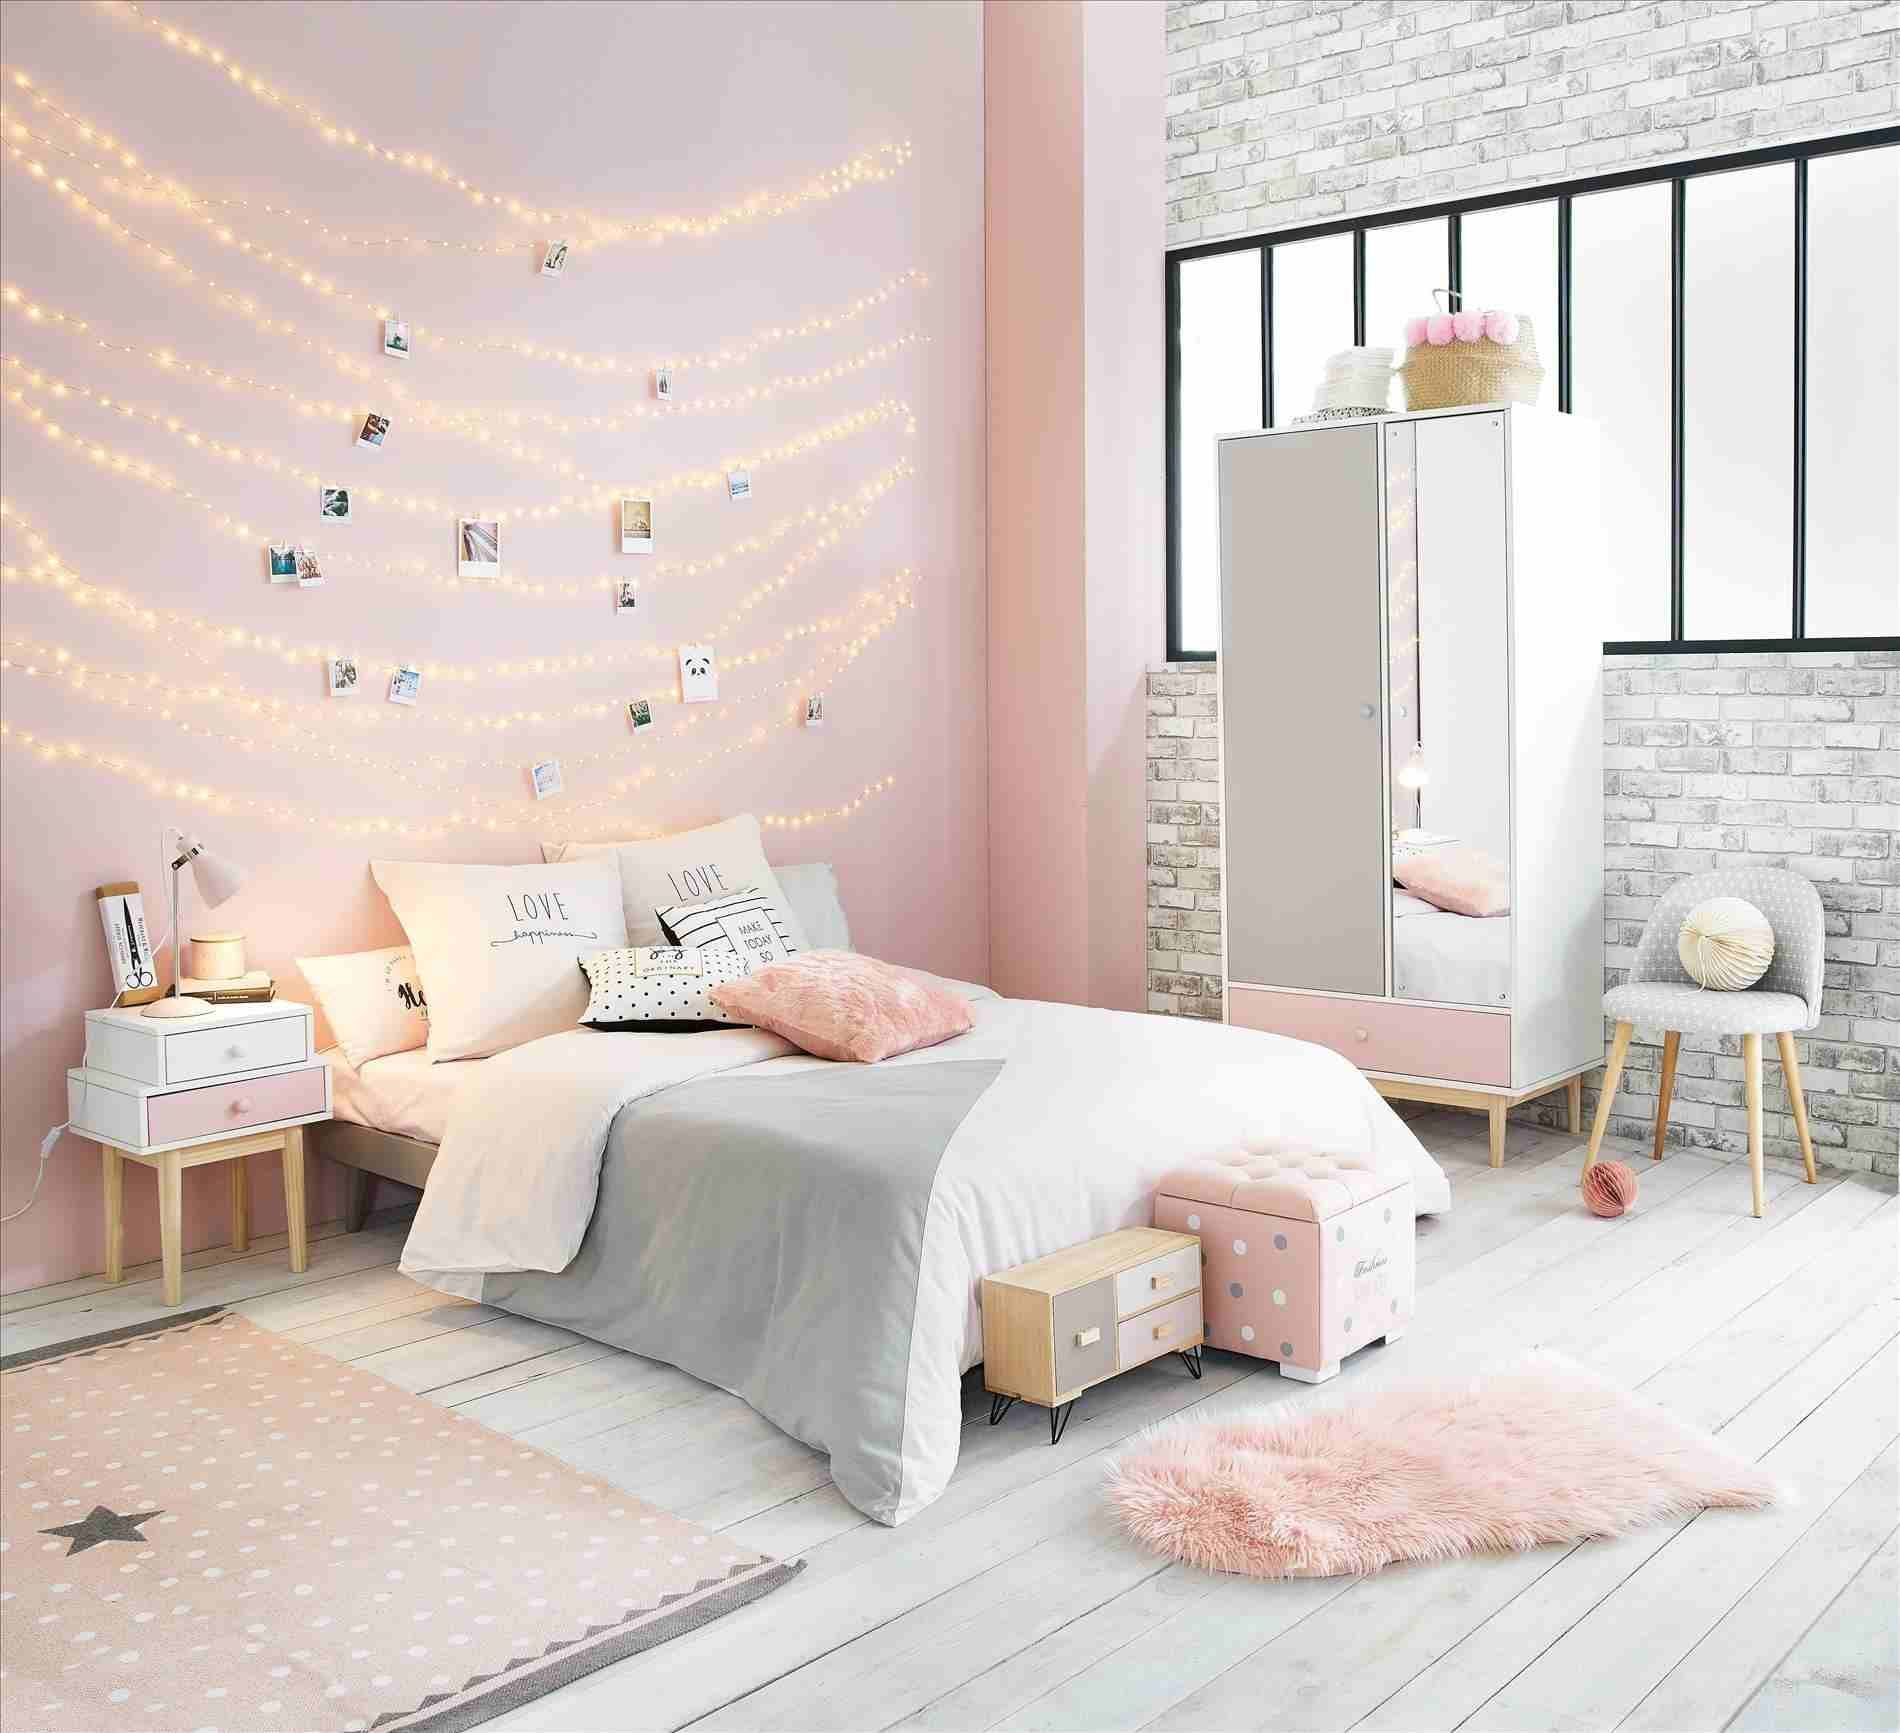 Bedroom Ideas Ireland Bedroom Design For Kids Boys Bedroom Designs For Small Rooms Bedroom Ideas Dark Walls: Brilliant Ideas Of Bedroom Room